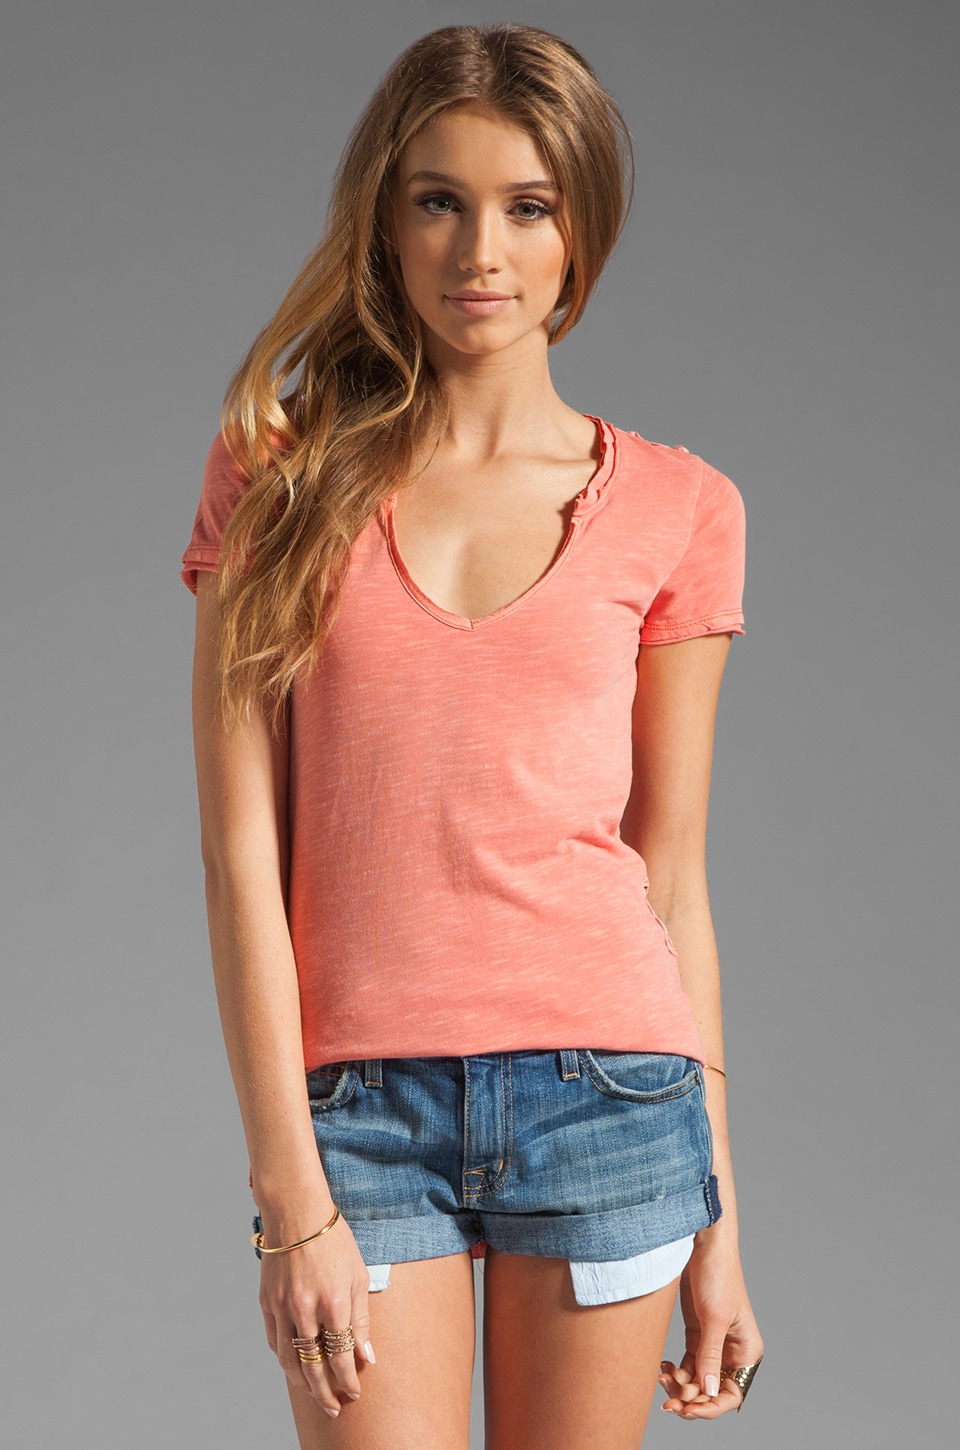 Free People Racer Battenburg Tee in Peach Punch